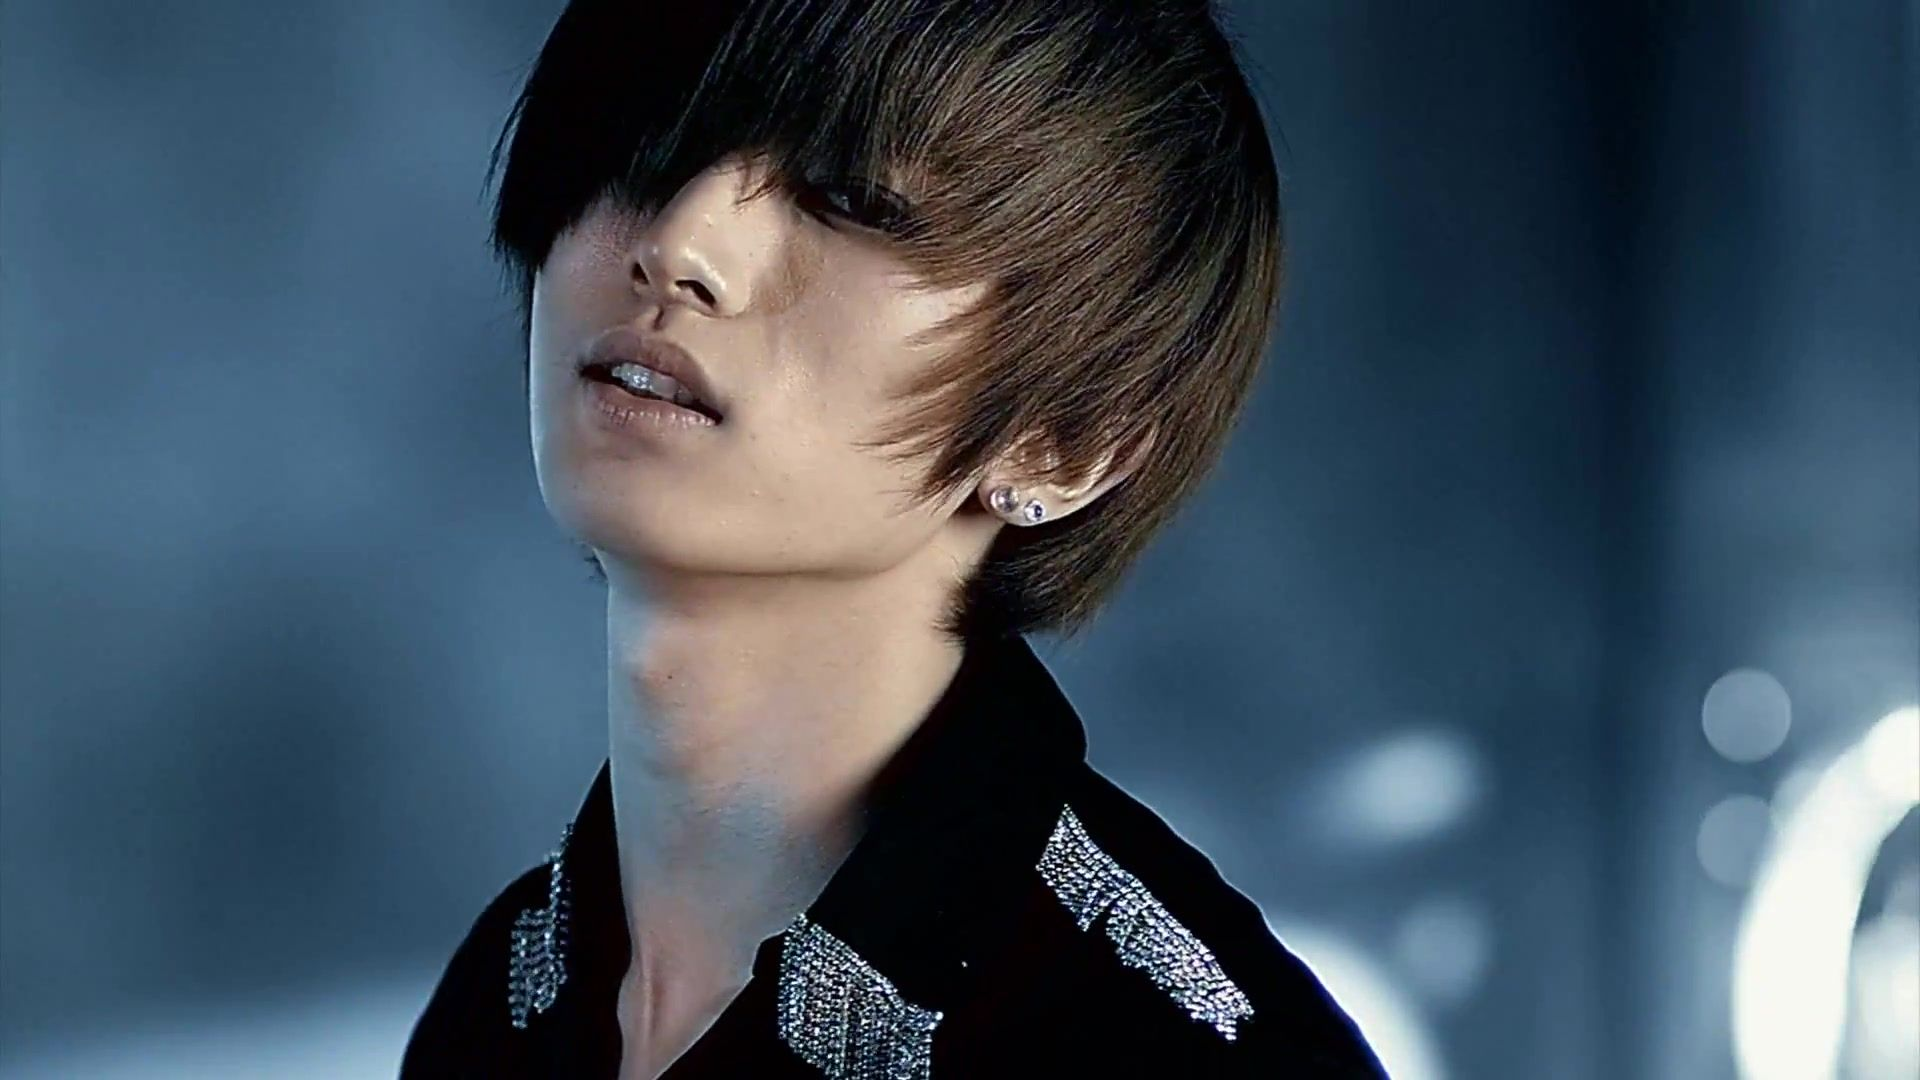 17 Best images about U-KISS LEE KISEOP ♥ on Pinterest | Raw photo ...